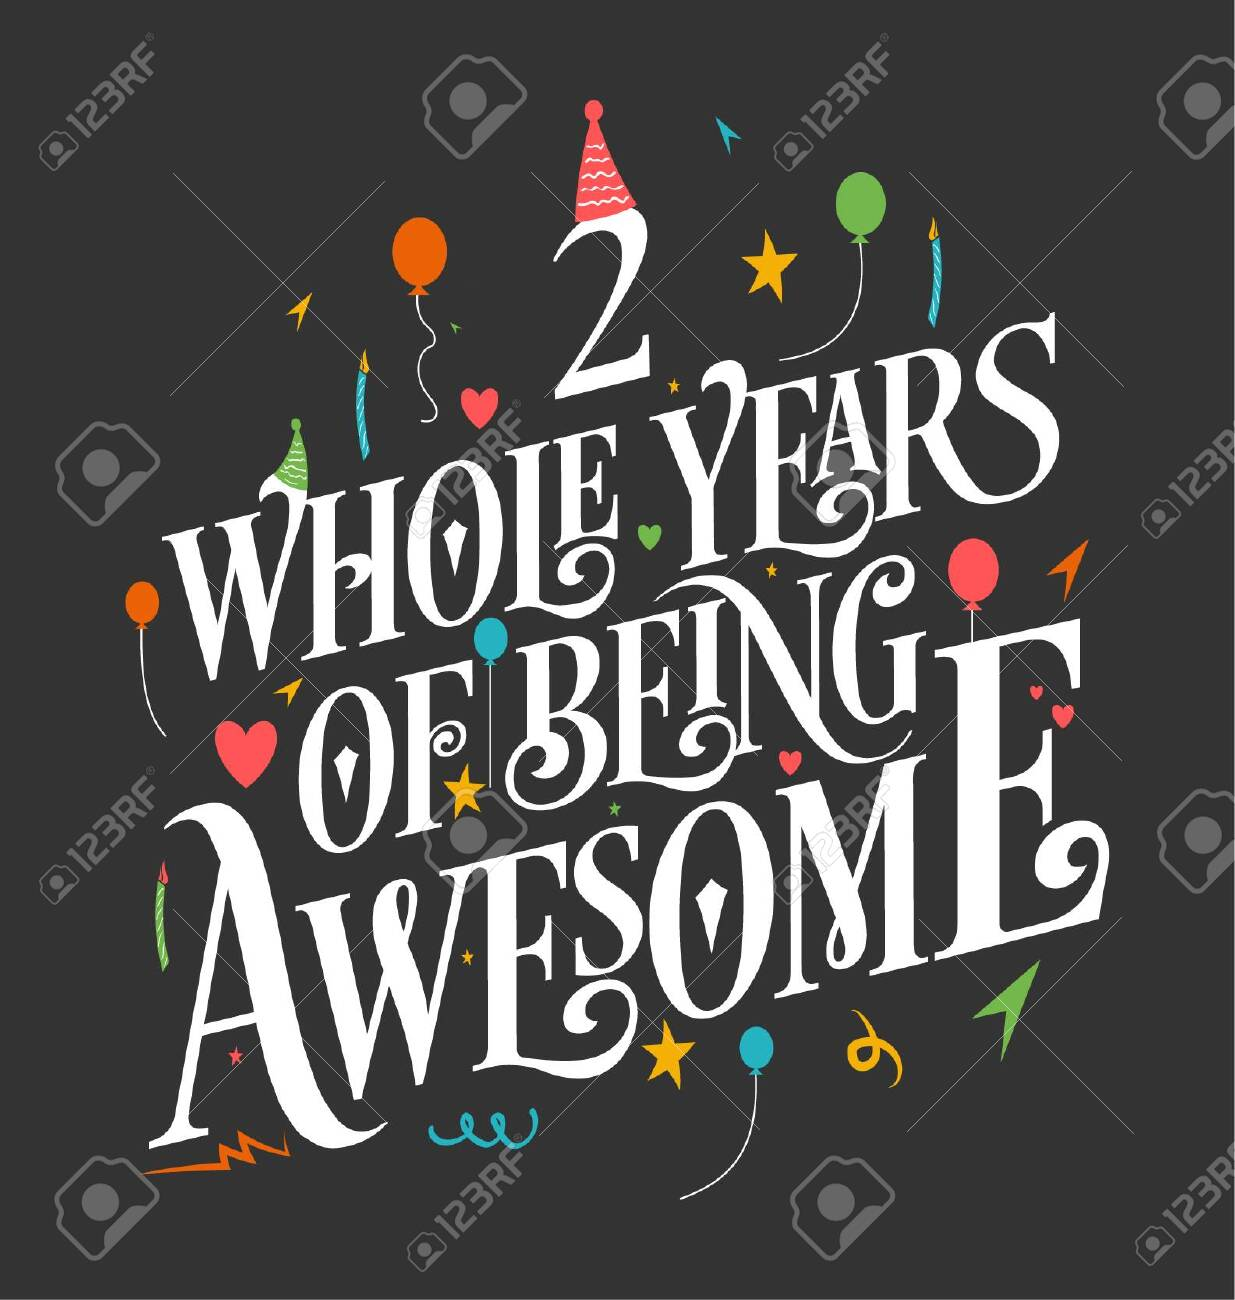 2nd Birthday And 2nd Wedding Anniversary Typography Design Royalty Free Cliparts Vectors And Stock Illustration Image 138837418